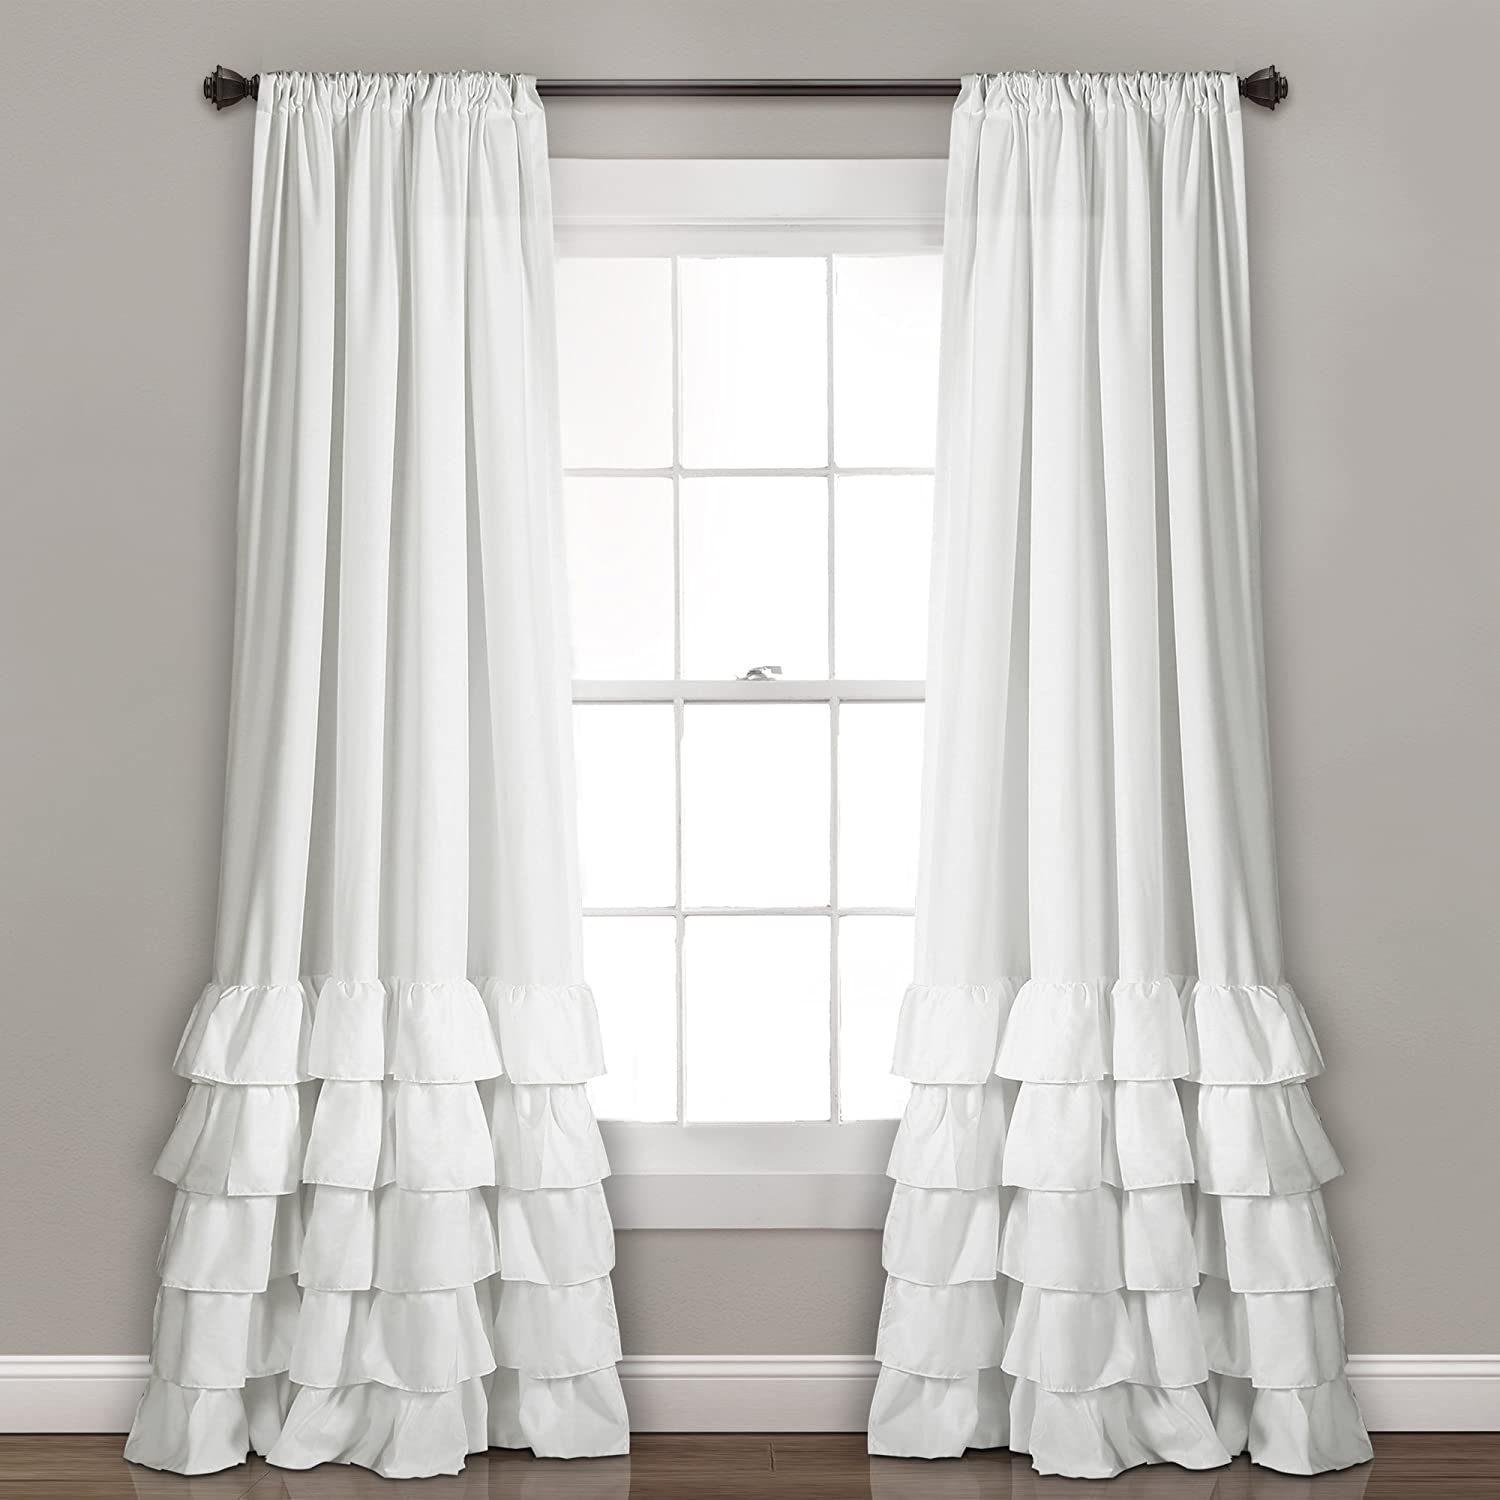 "Lush Decor Allison Ruffle Curtains-Window Panel Drapes Set for Living, Dining Room, Bedroom (Pair), 84"" x 40"", White"